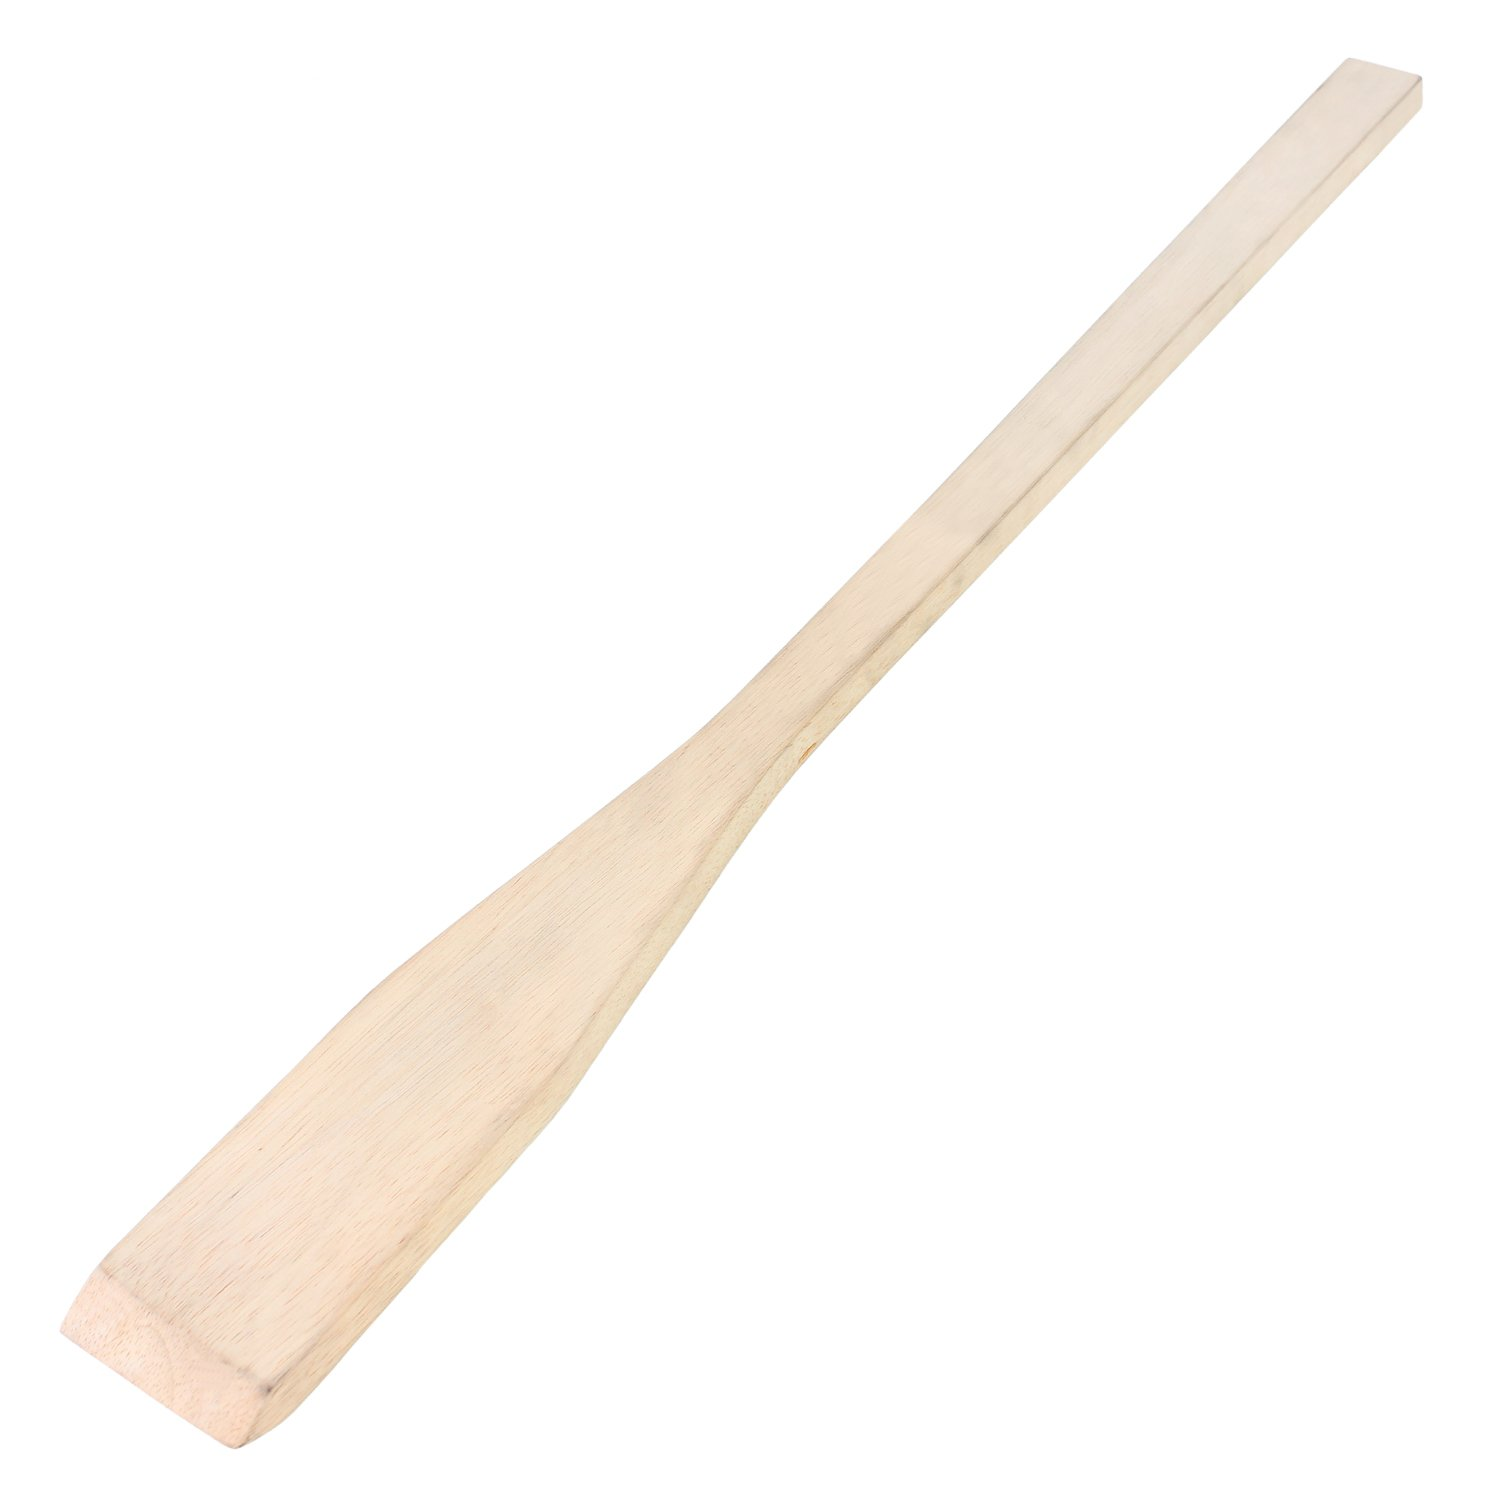 Excellante 849851009189 Wood Mixing Paddles, 30''